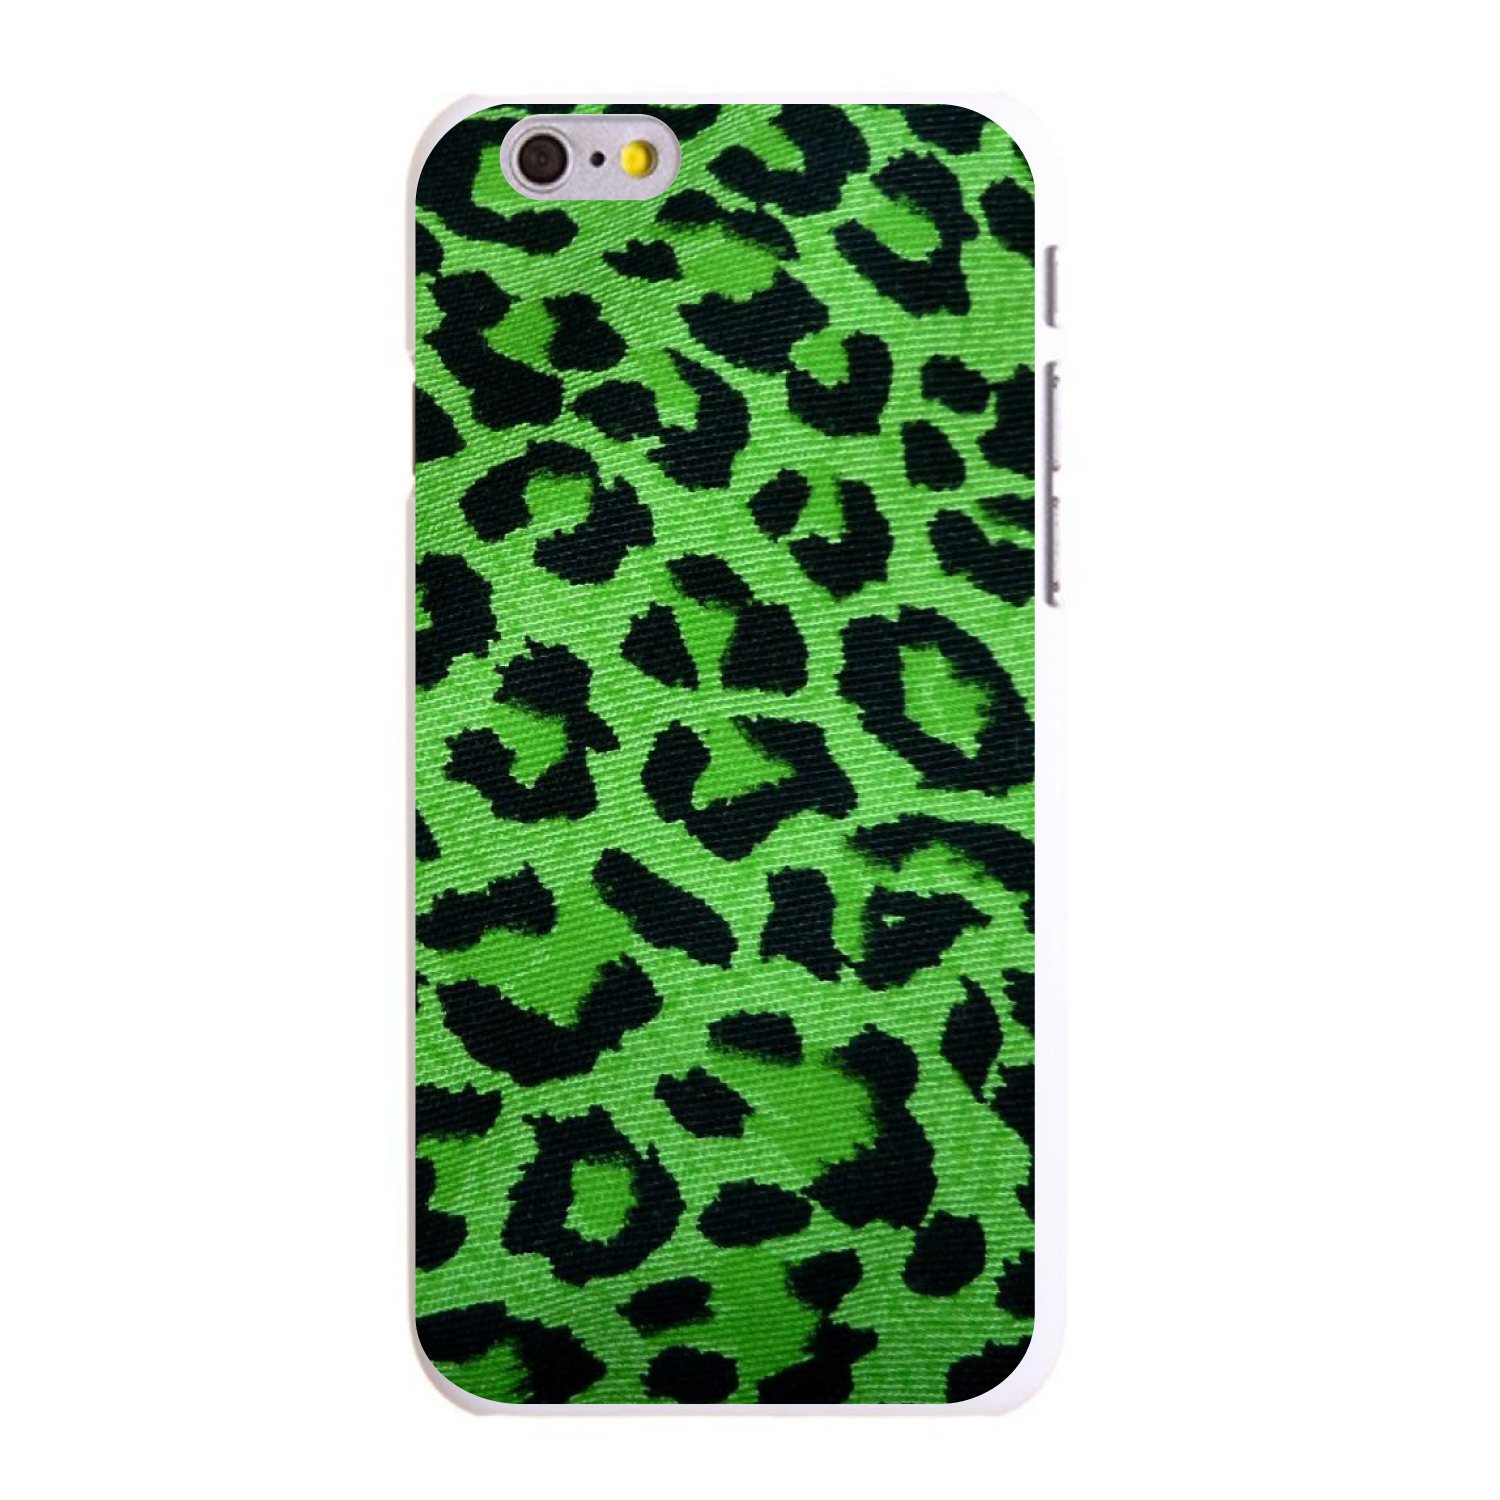 "CUSTOM White Hard Plastic Snap-On Case for Apple iPhone 6 / 6S (4.7"" Screen) - Green Black Leopard Skin Spots"